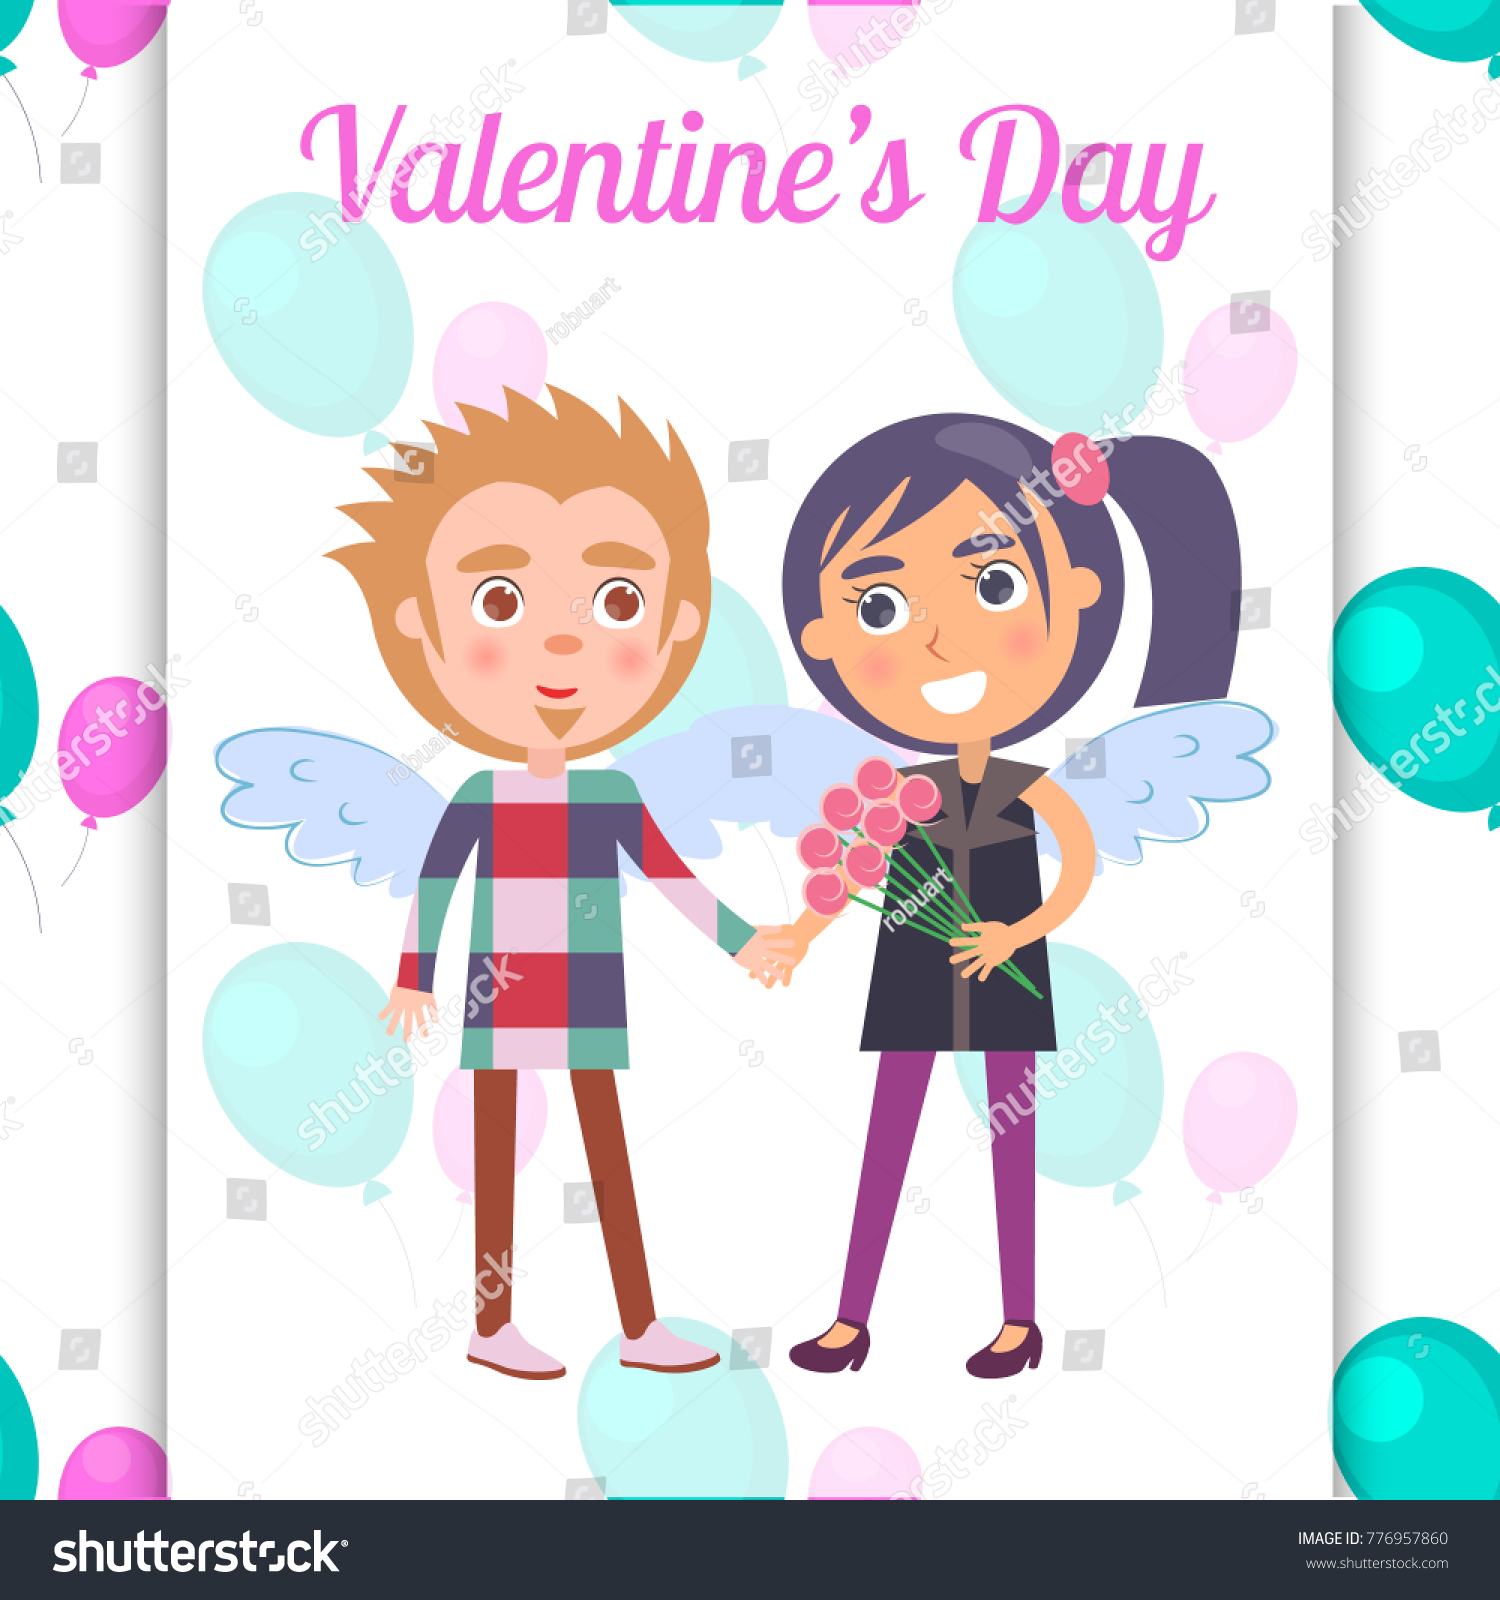 Valentines Day Poster First Date Teenage Stock Vector 776957860 .